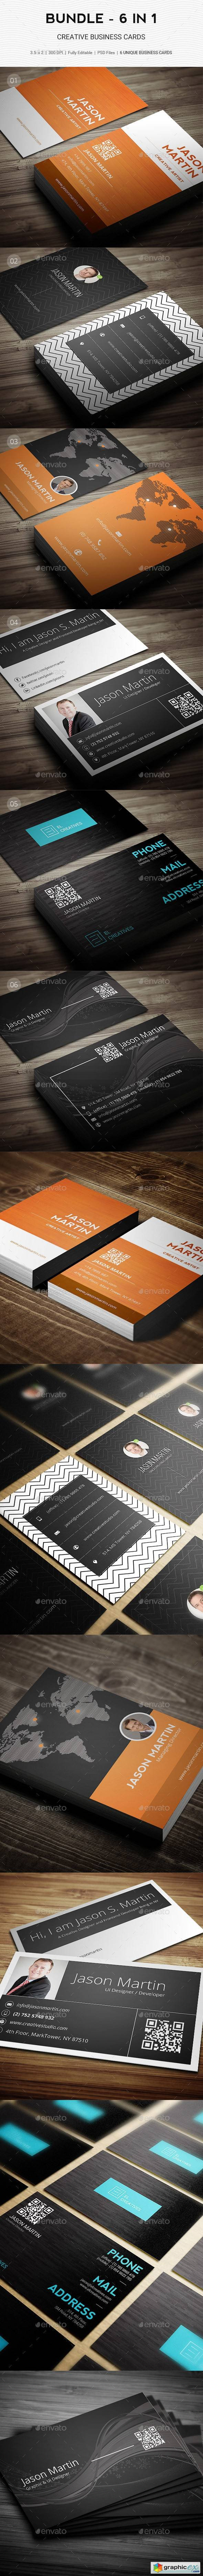 Bundle - Pro 6 in 1 - Creative Business Cards - B49